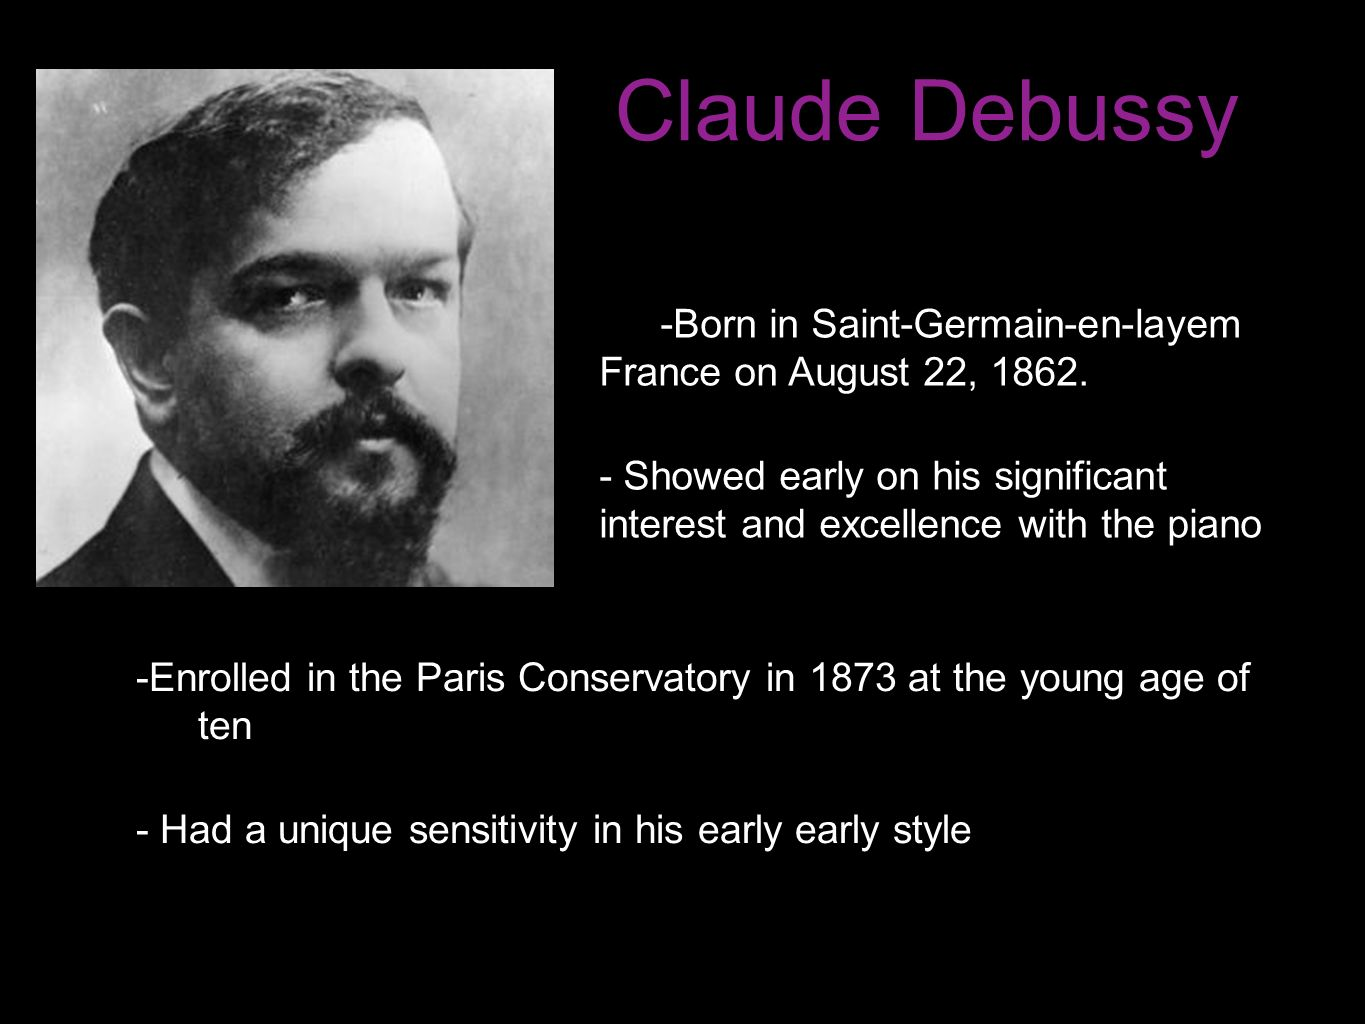 claude achille debussy Debussy - rêverie - ebook written by claude achille debussy read this book using google play books app on your pc, android, ios devices download for offline reading, highlight, bookmark or take notes while you read debussy - rêverie.